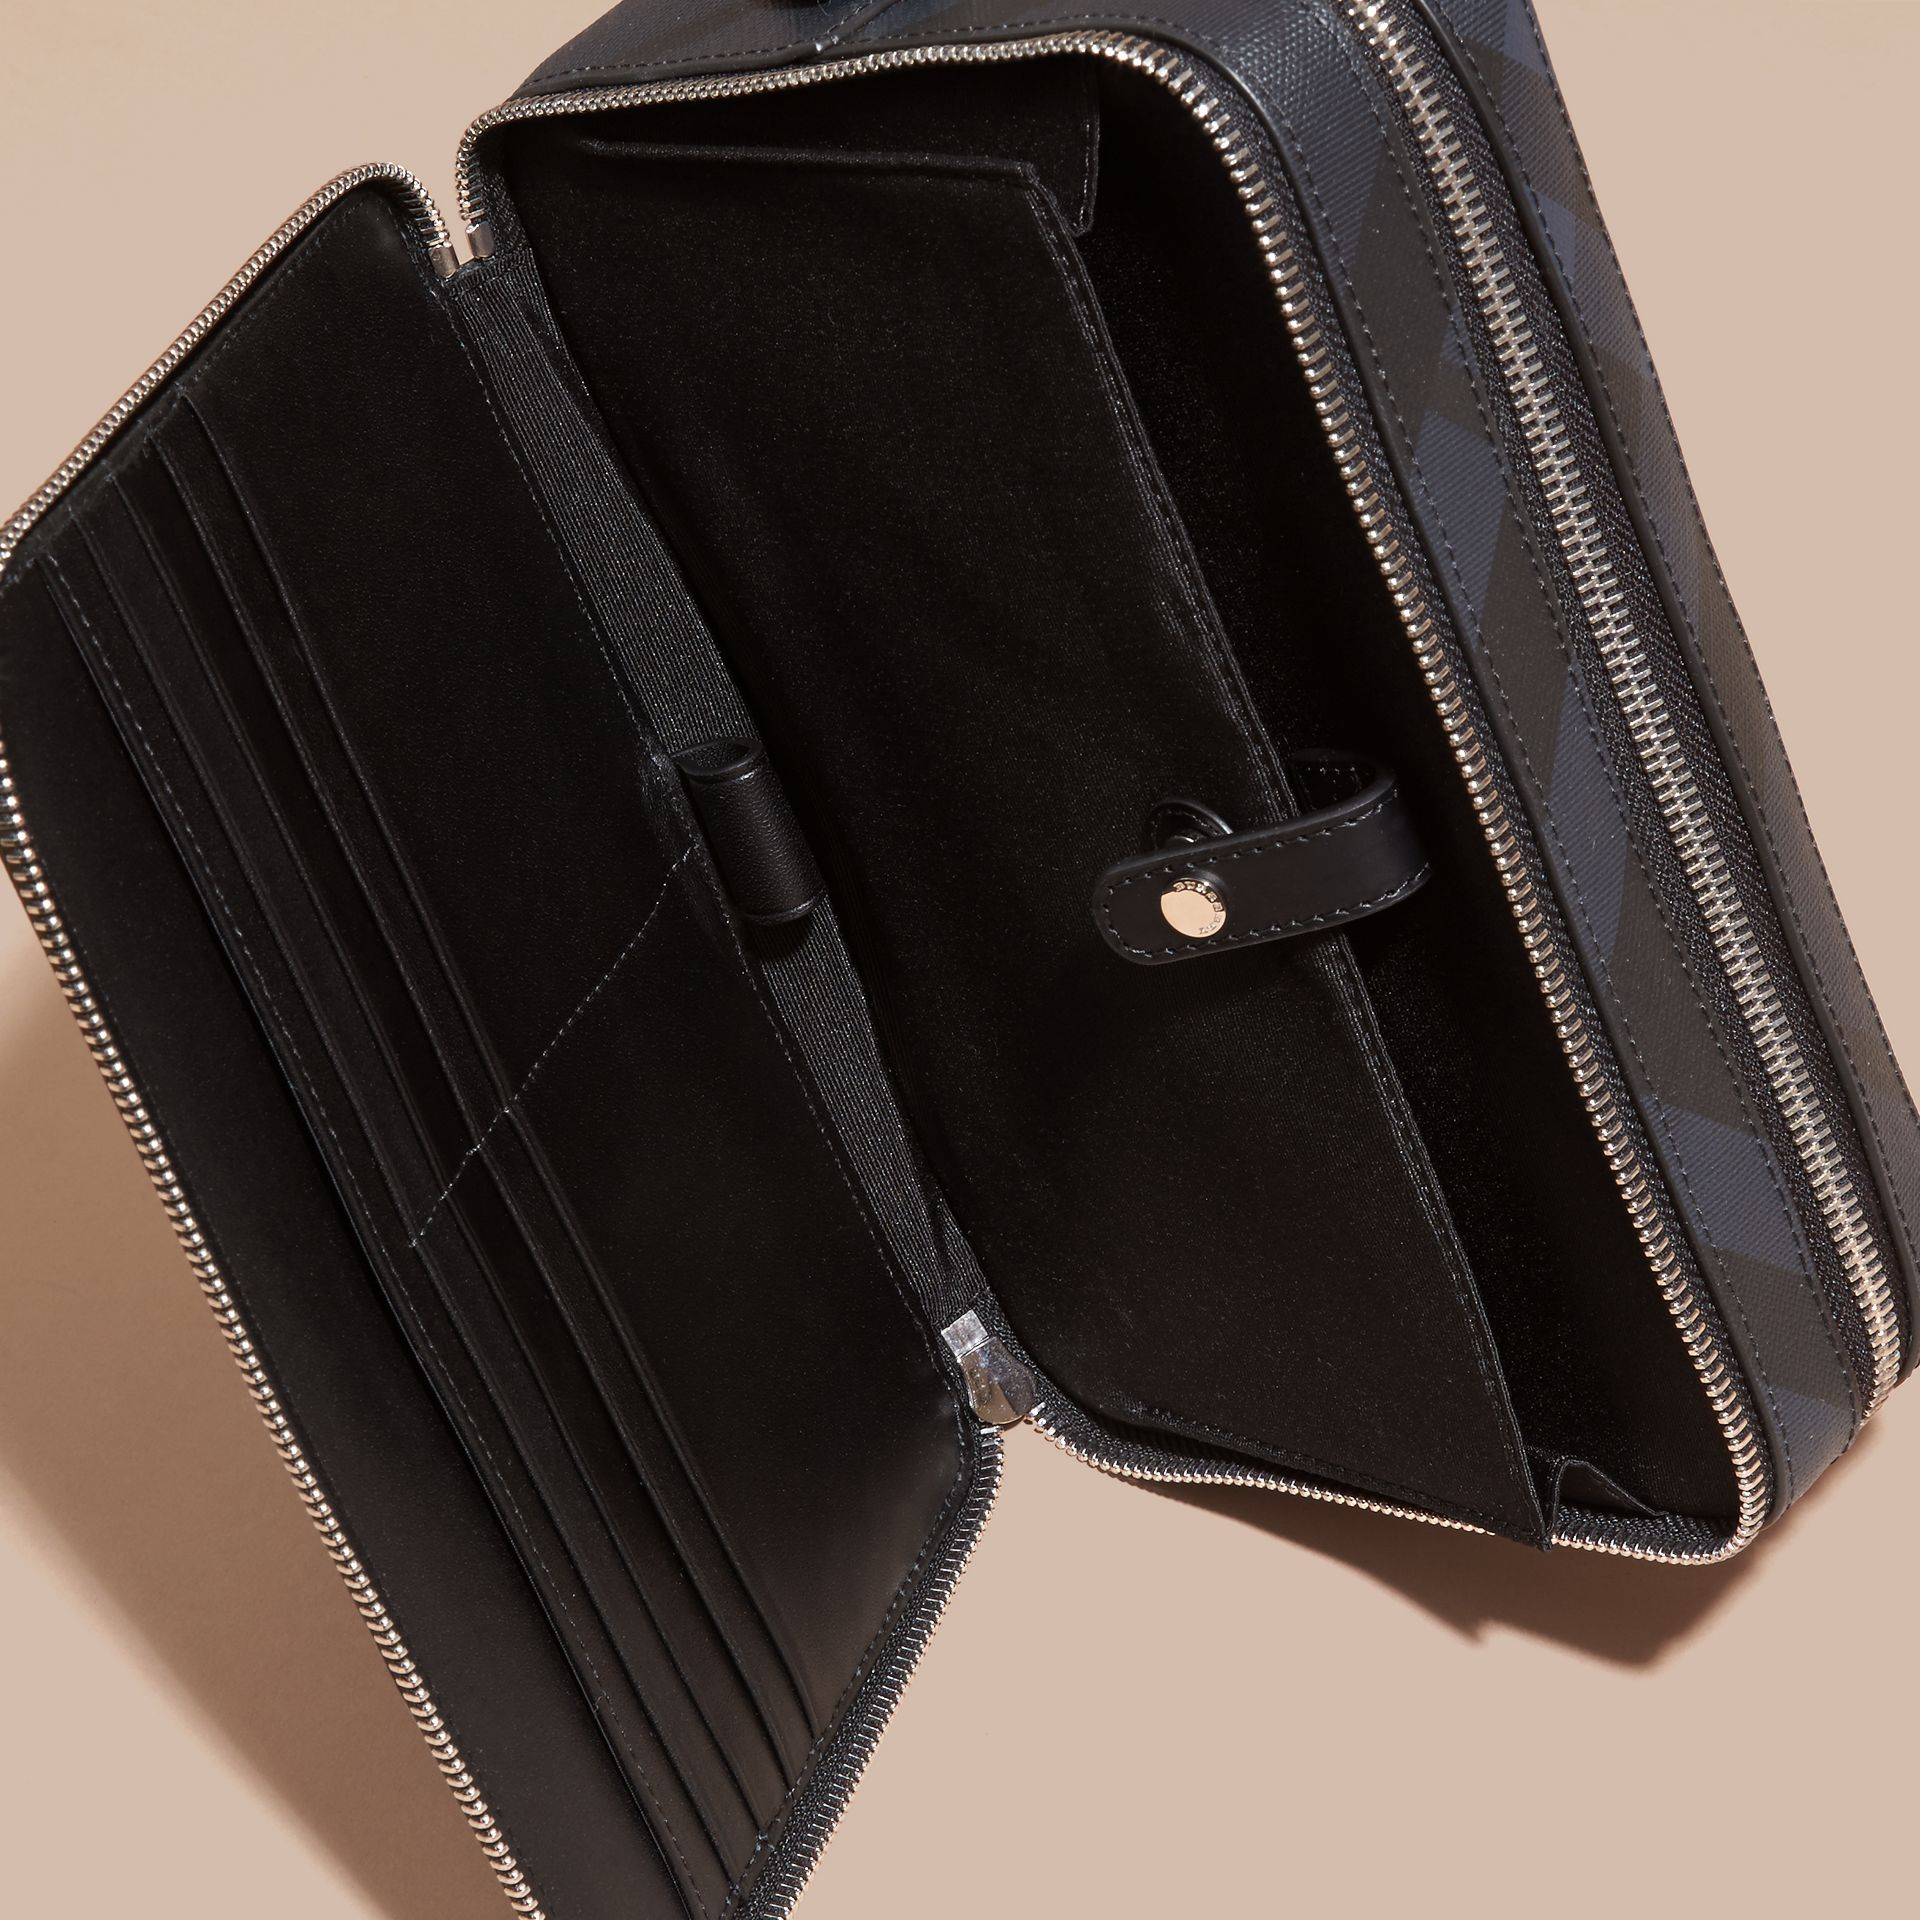 Leather-trimmed London Check Pouch in Navy/black - Men | Burberry Australia - gallery image 4